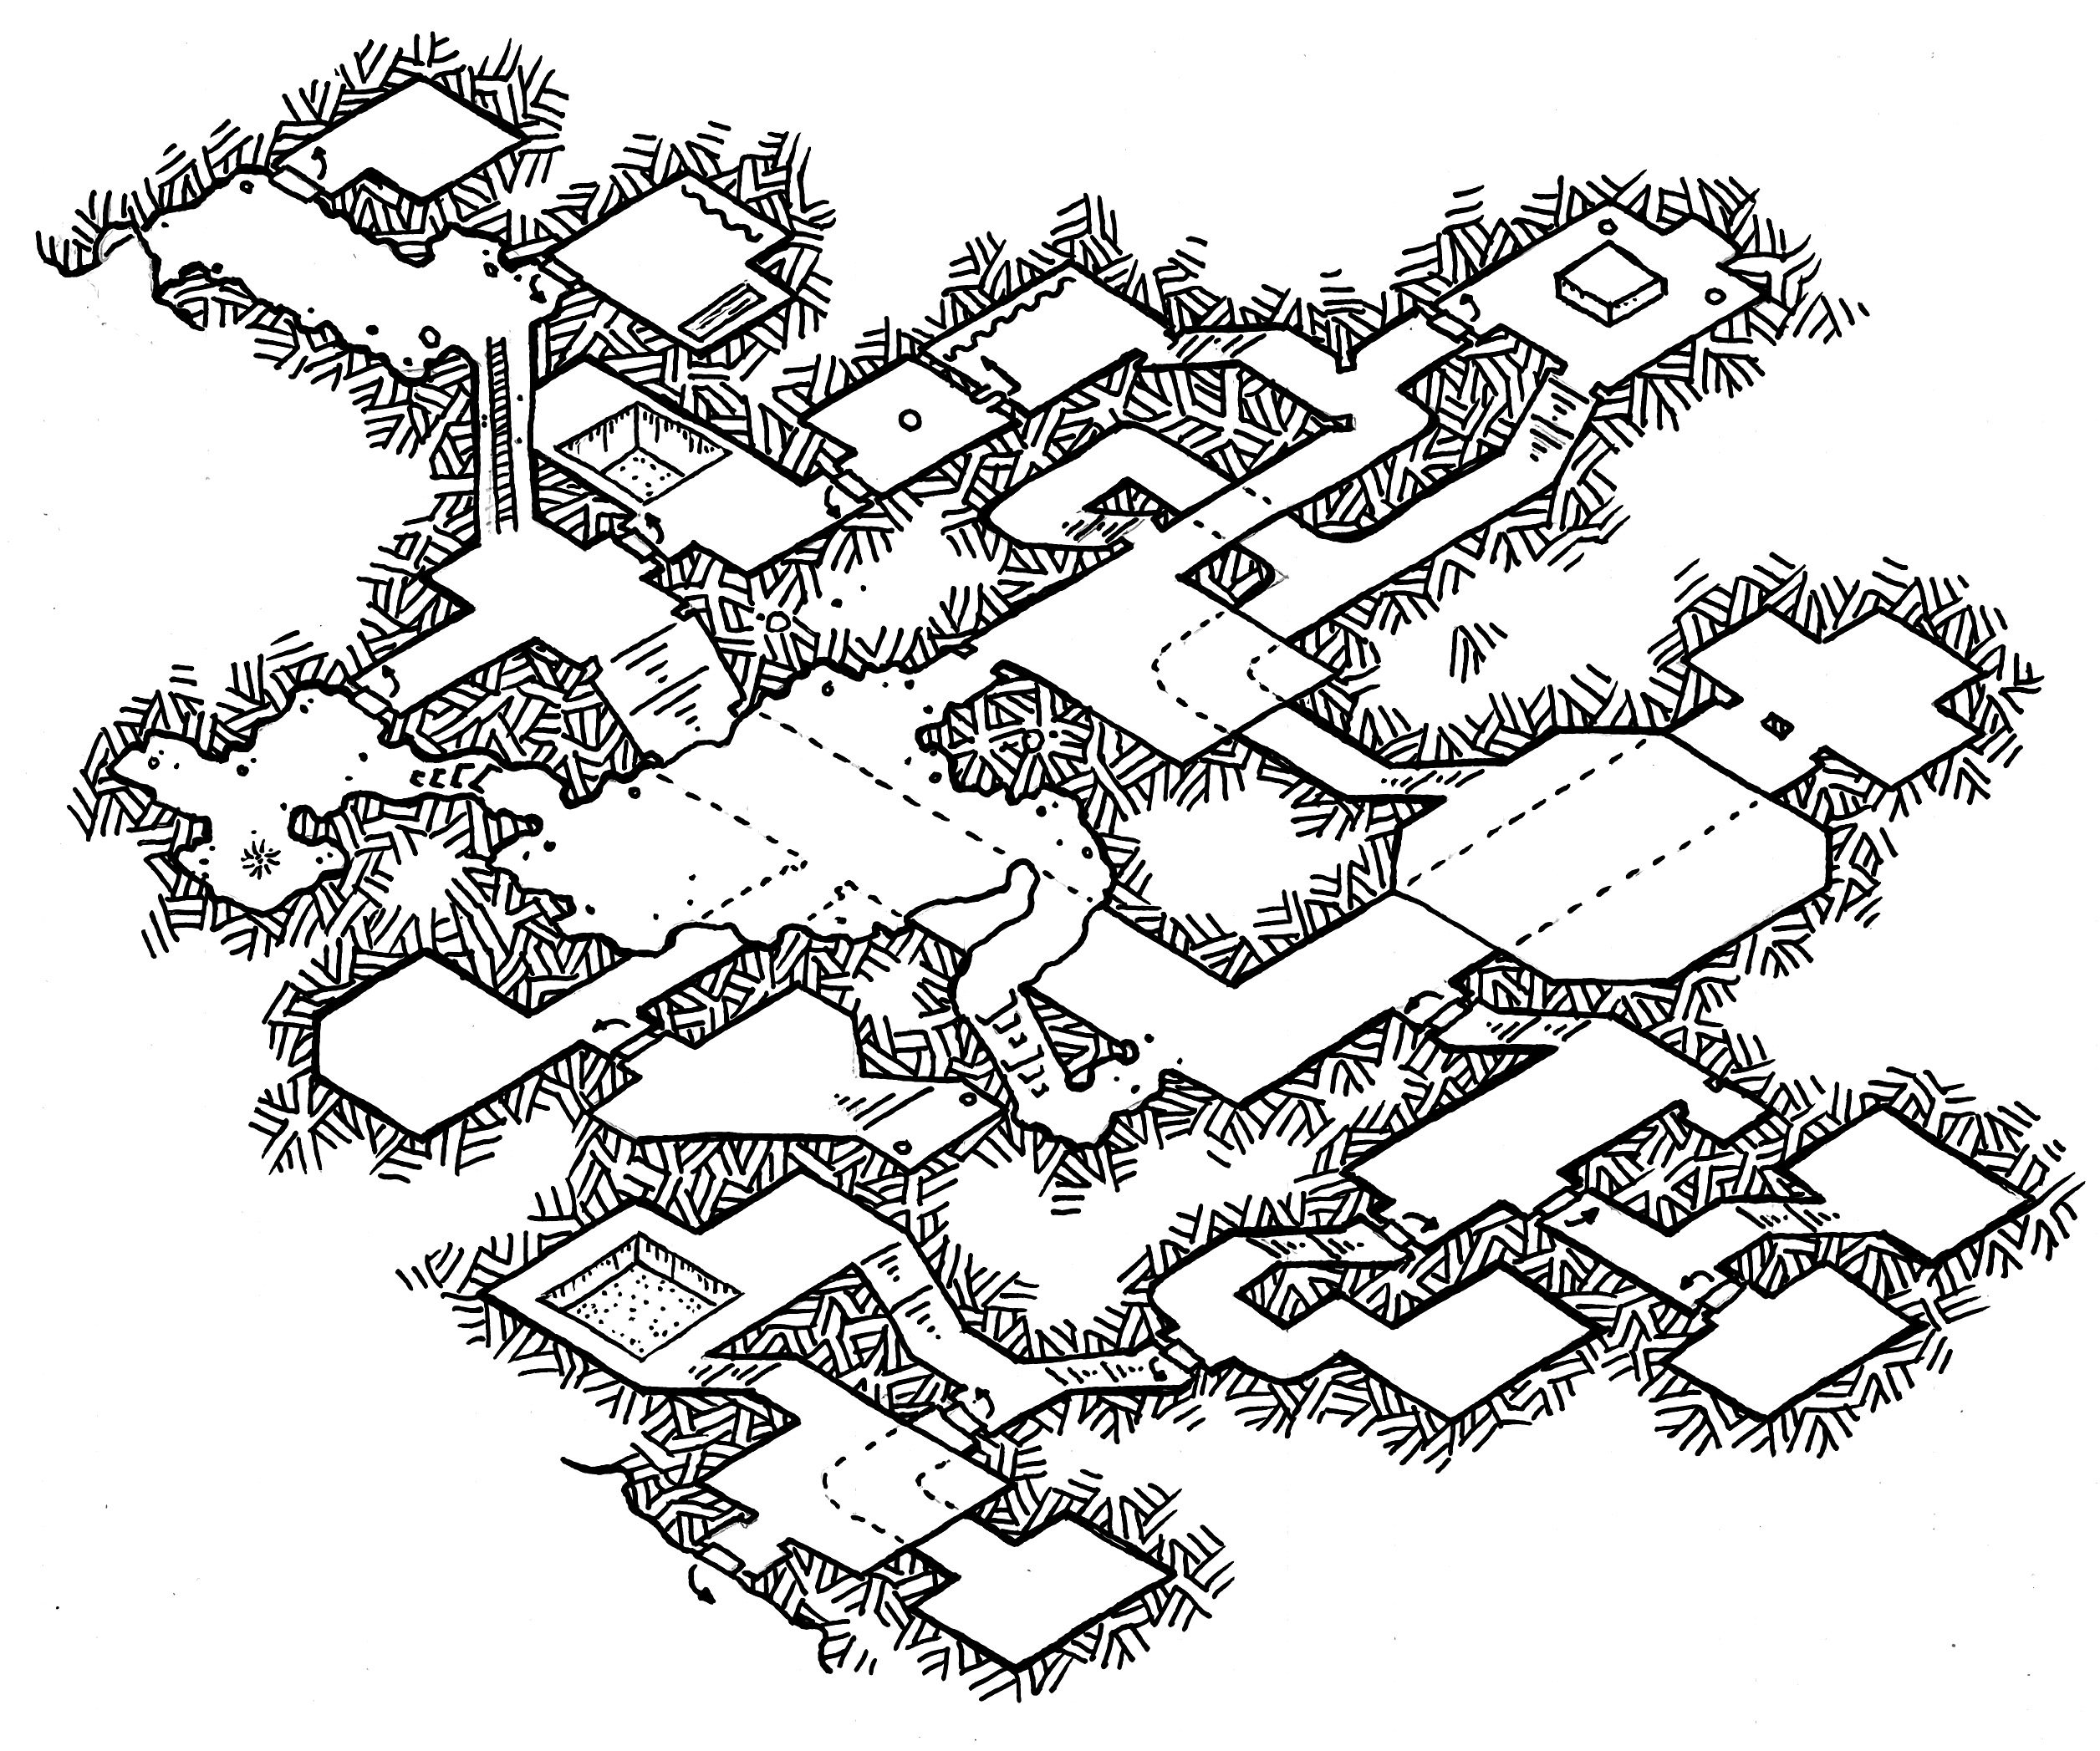 friday map  isometric dungeon experiment  4